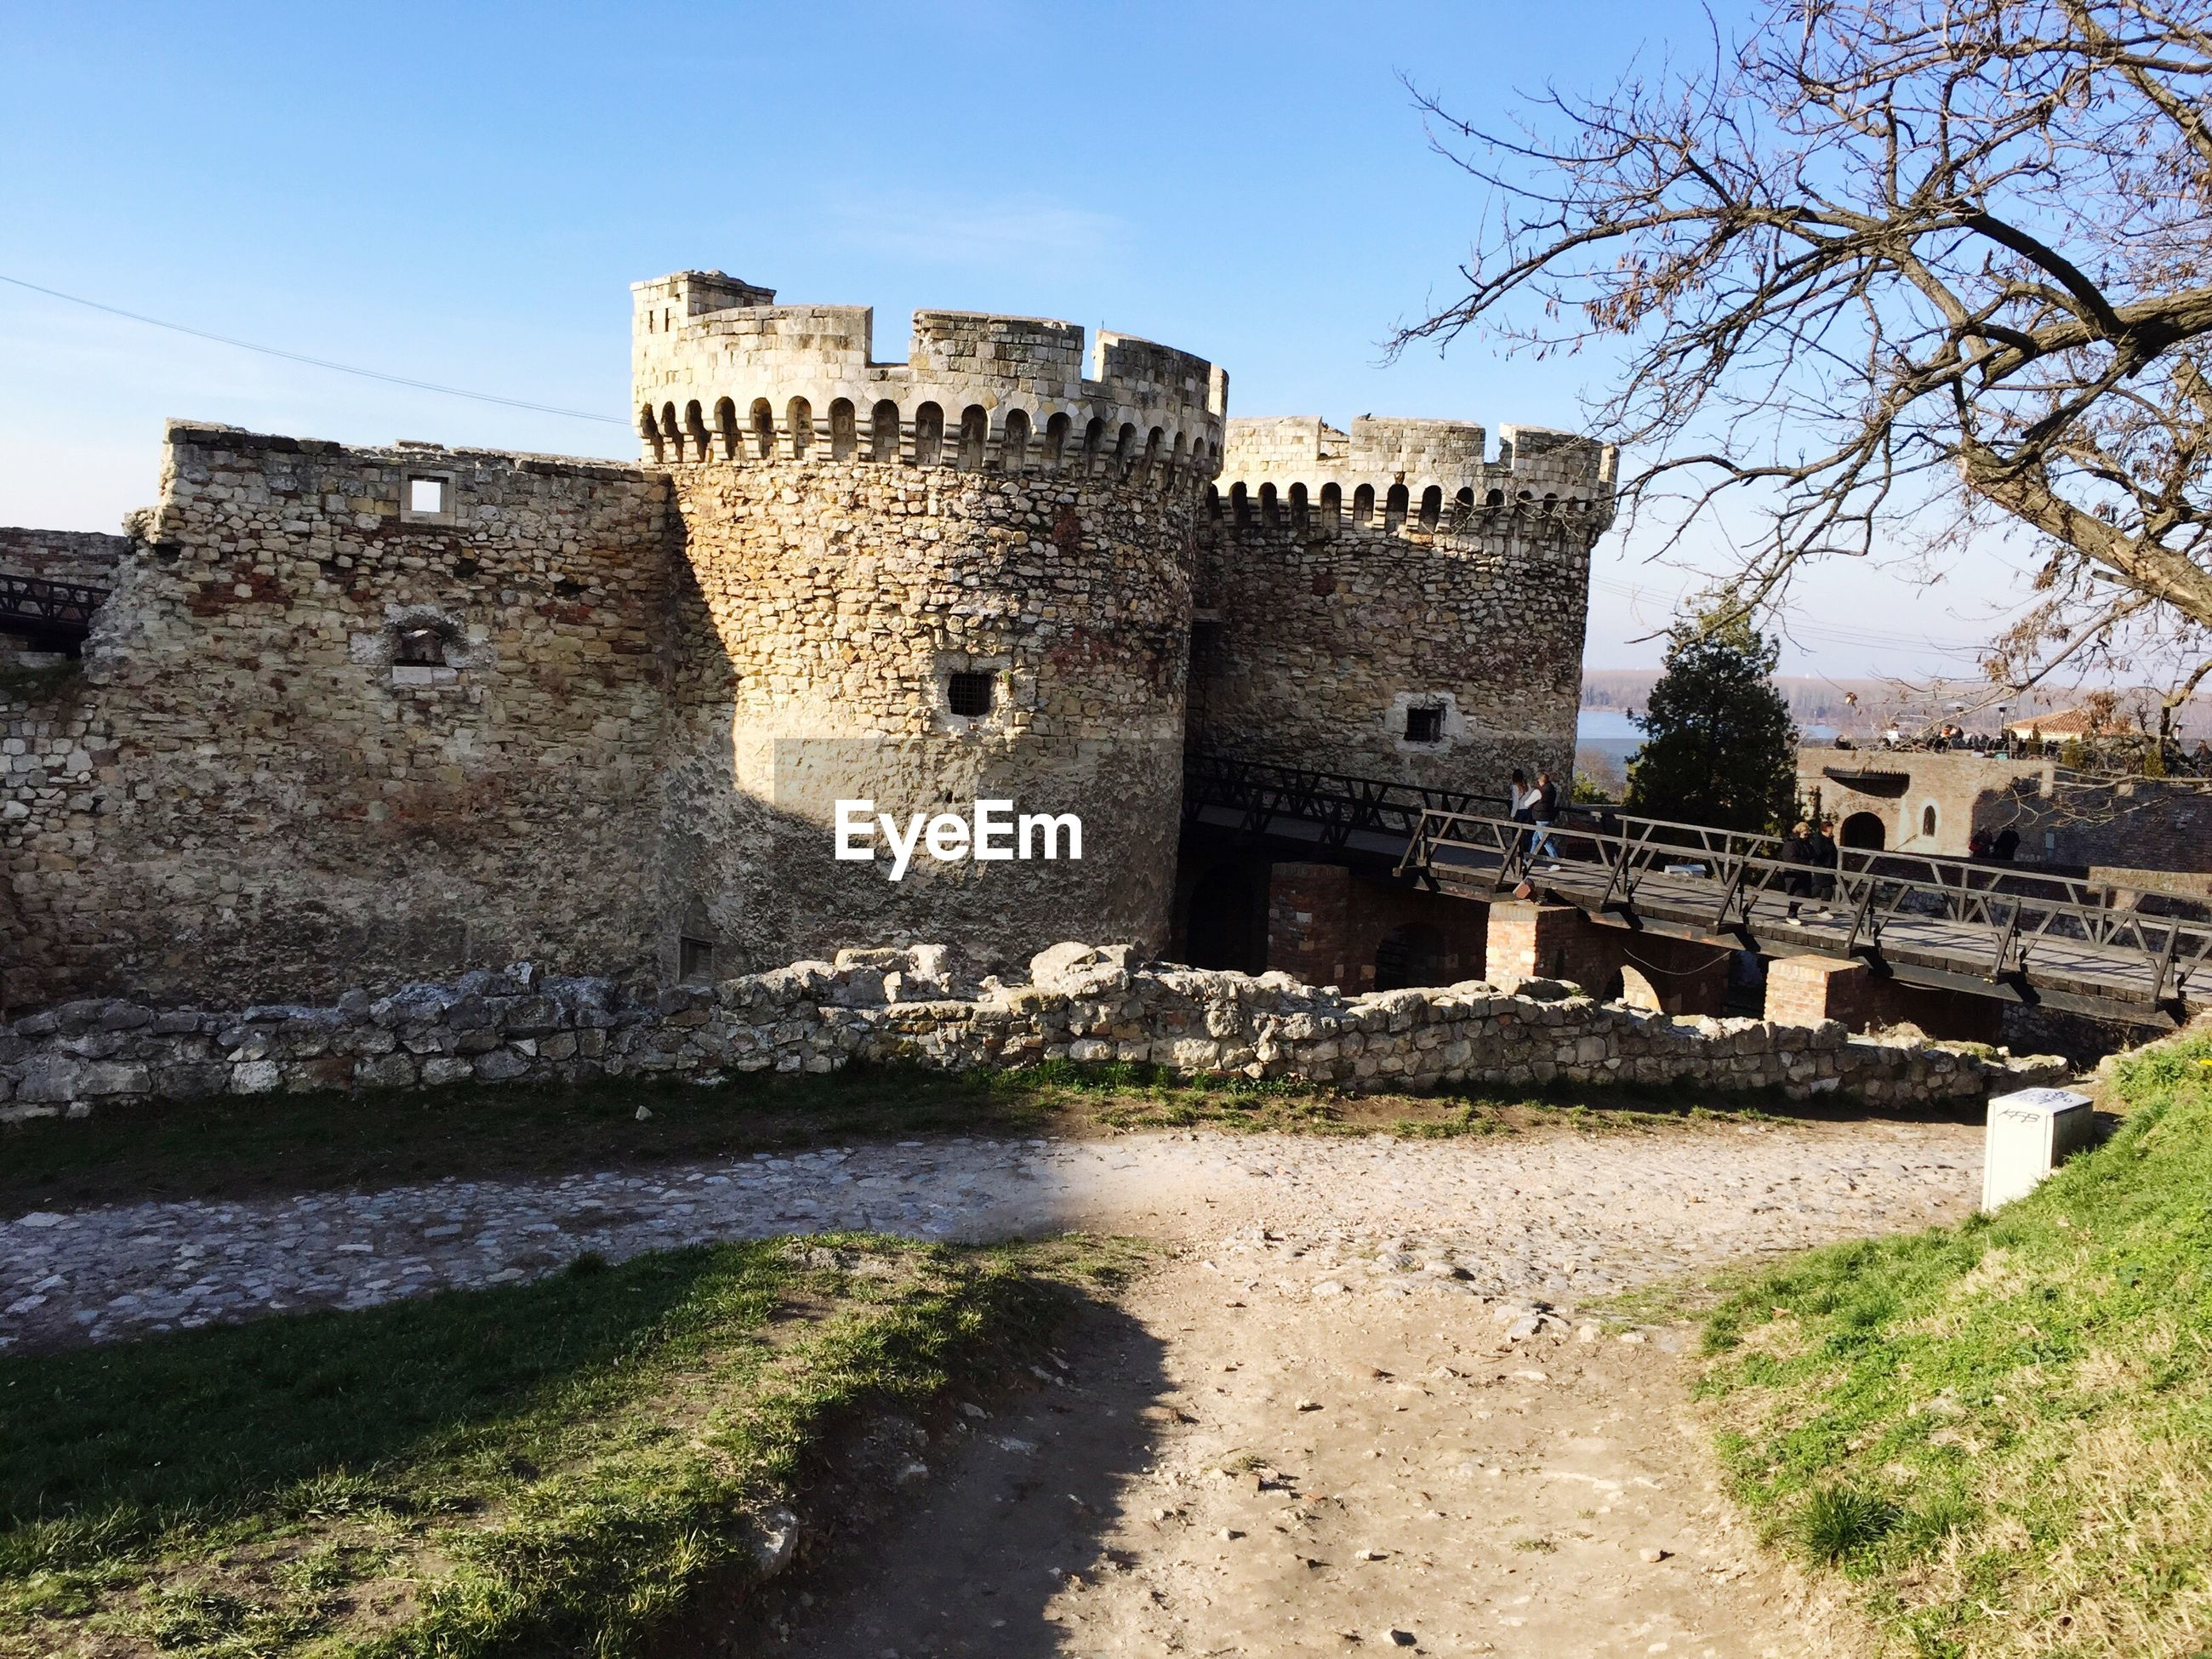 architecture, built structure, building exterior, history, old, old ruin, the past, clear sky, stone wall, ancient, castle, famous place, low angle view, travel destinations, ruined, ancient civilization, sky, damaged, day, abandoned